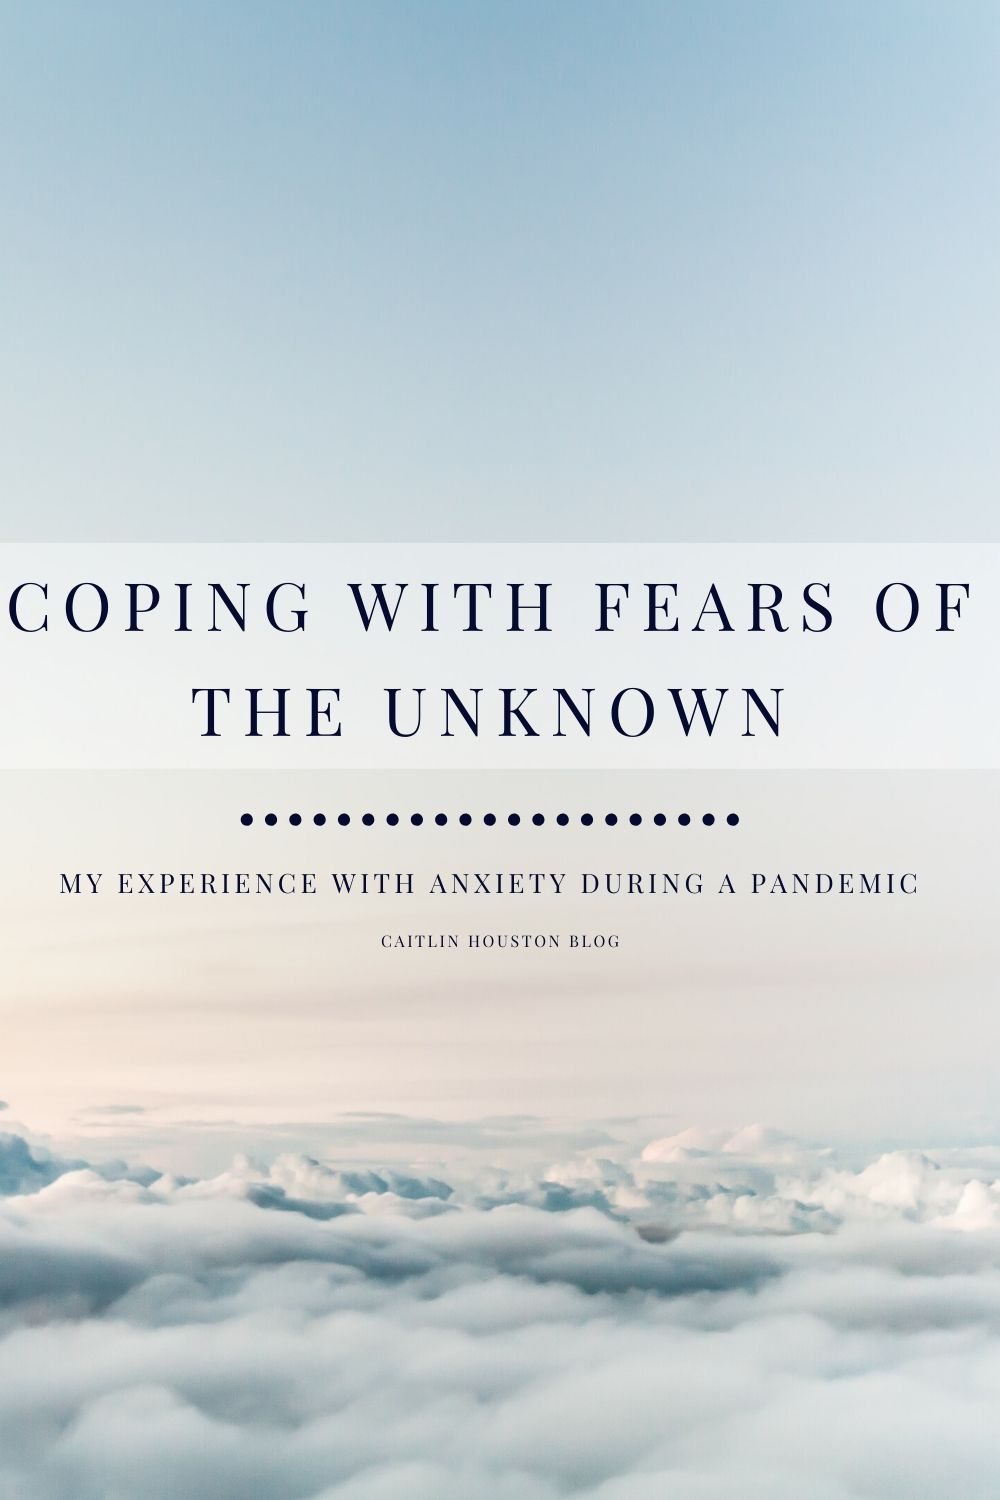 Coping with Fears of the Unknown During the Worldwide Pandemic